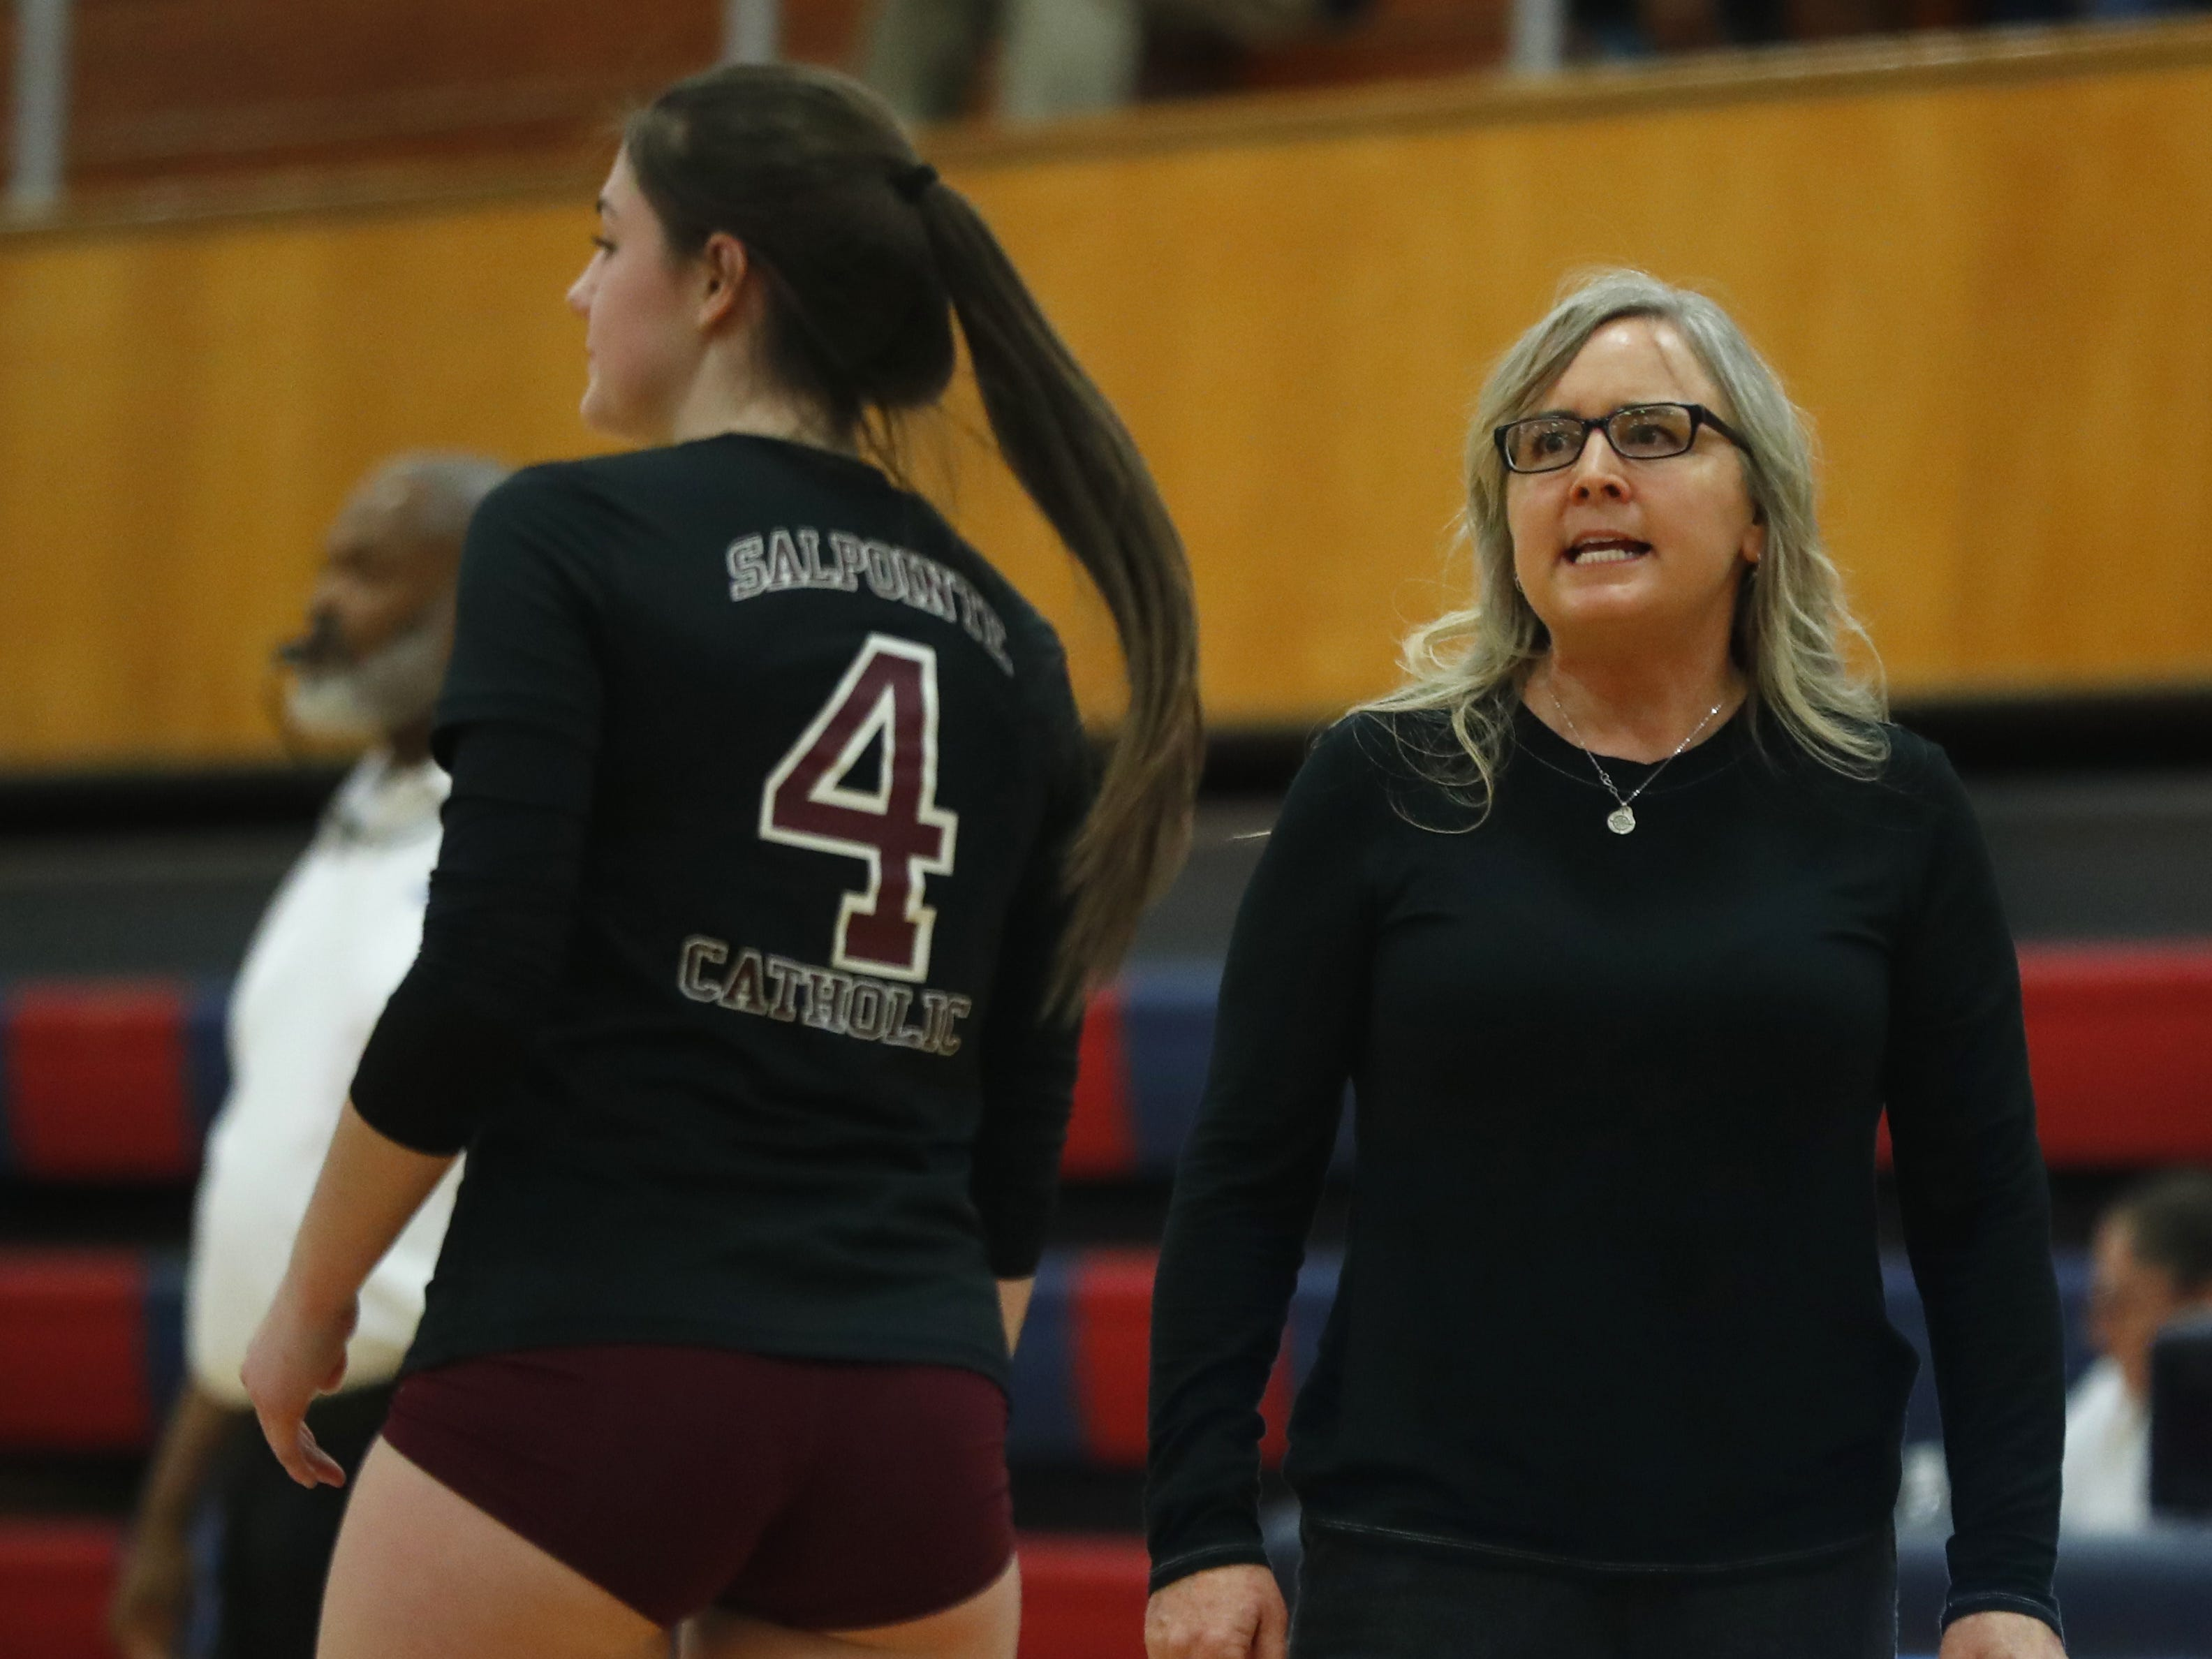 Salpointe Catholic's  Heather Moore-Martin talks with Brandy Kishbaugh (4) during the 4A State Championship in Volleyball at McClintock High School in Tempe, Ariz. on November 5, 2018.